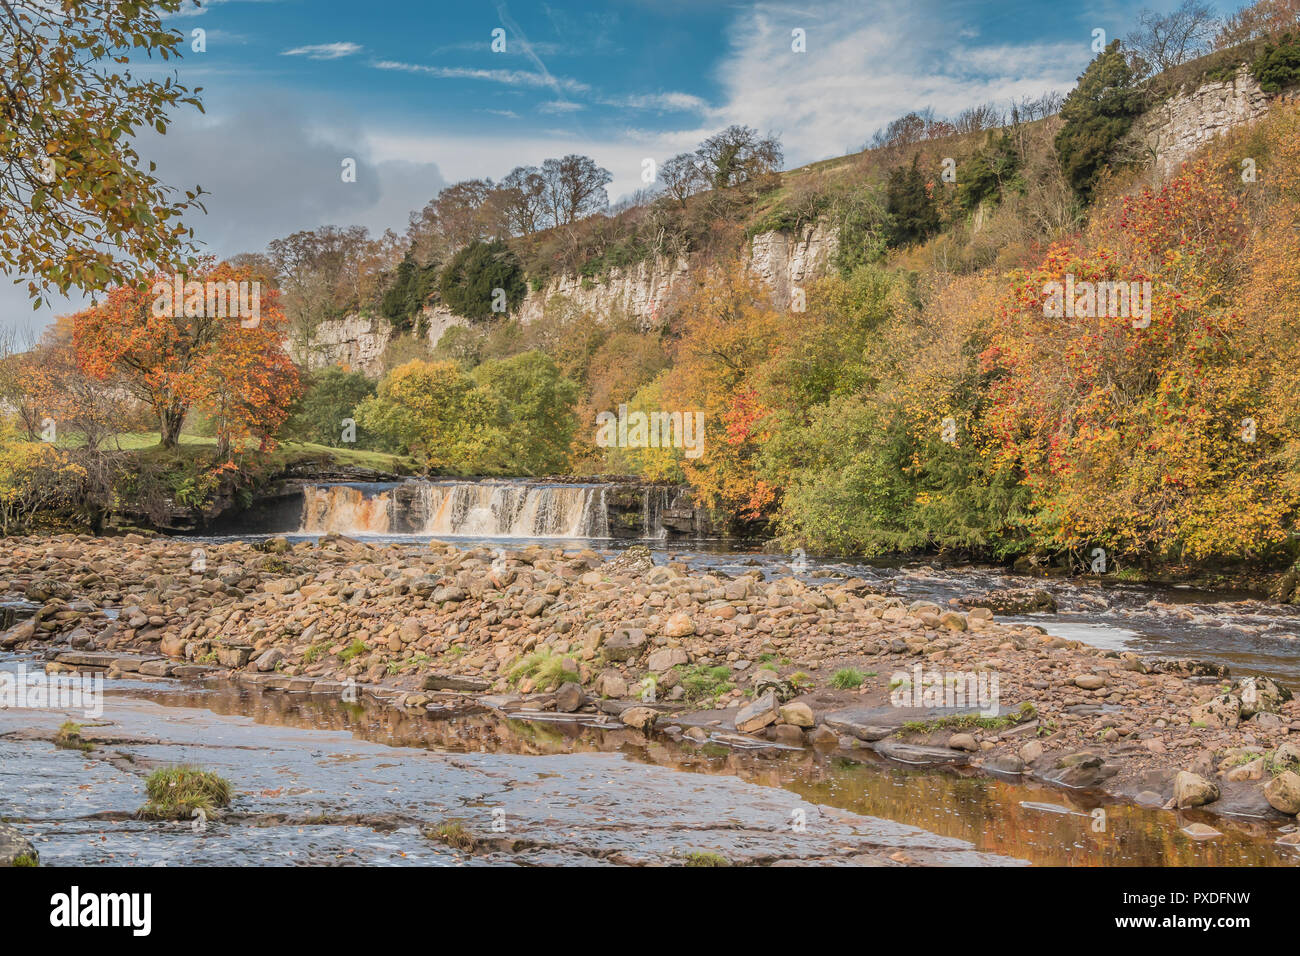 Yorkshire Dales National Park autumn landscape, vivid autumn colours at Wain Wath Falls, Swaledale, UK Stock Photo